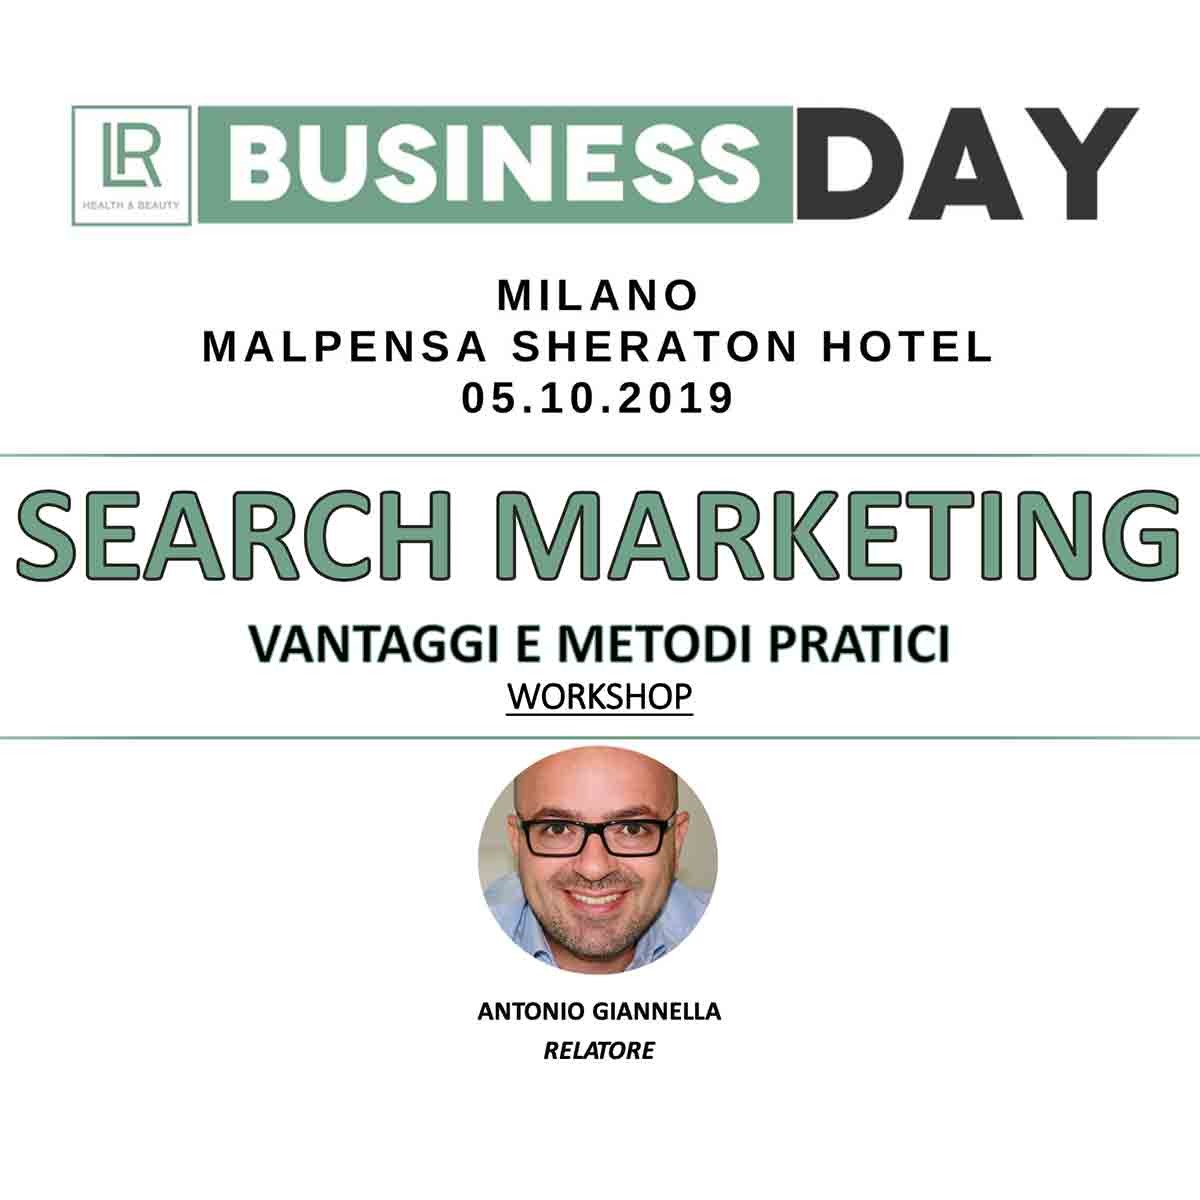 lr business day 2019 milano